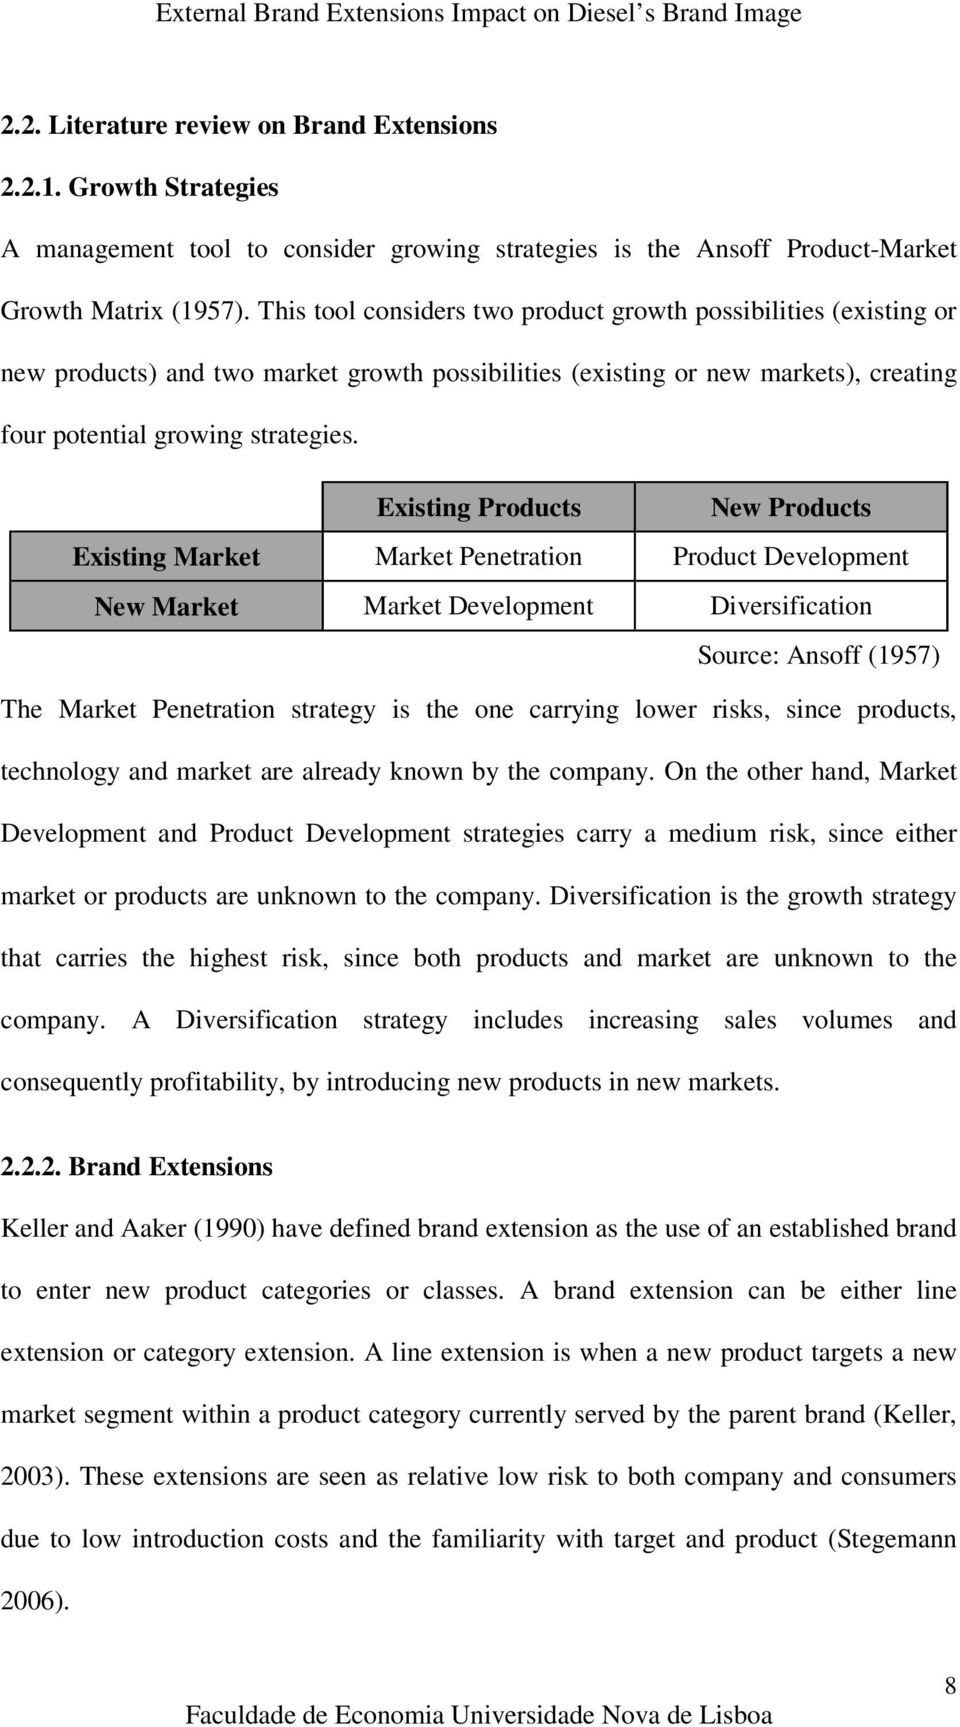 Existing Products New Products Existing Market Market Penetration Product Development New Market Market Development Diversification Source: Ansoff (1957) The Market Penetration strategy is the one